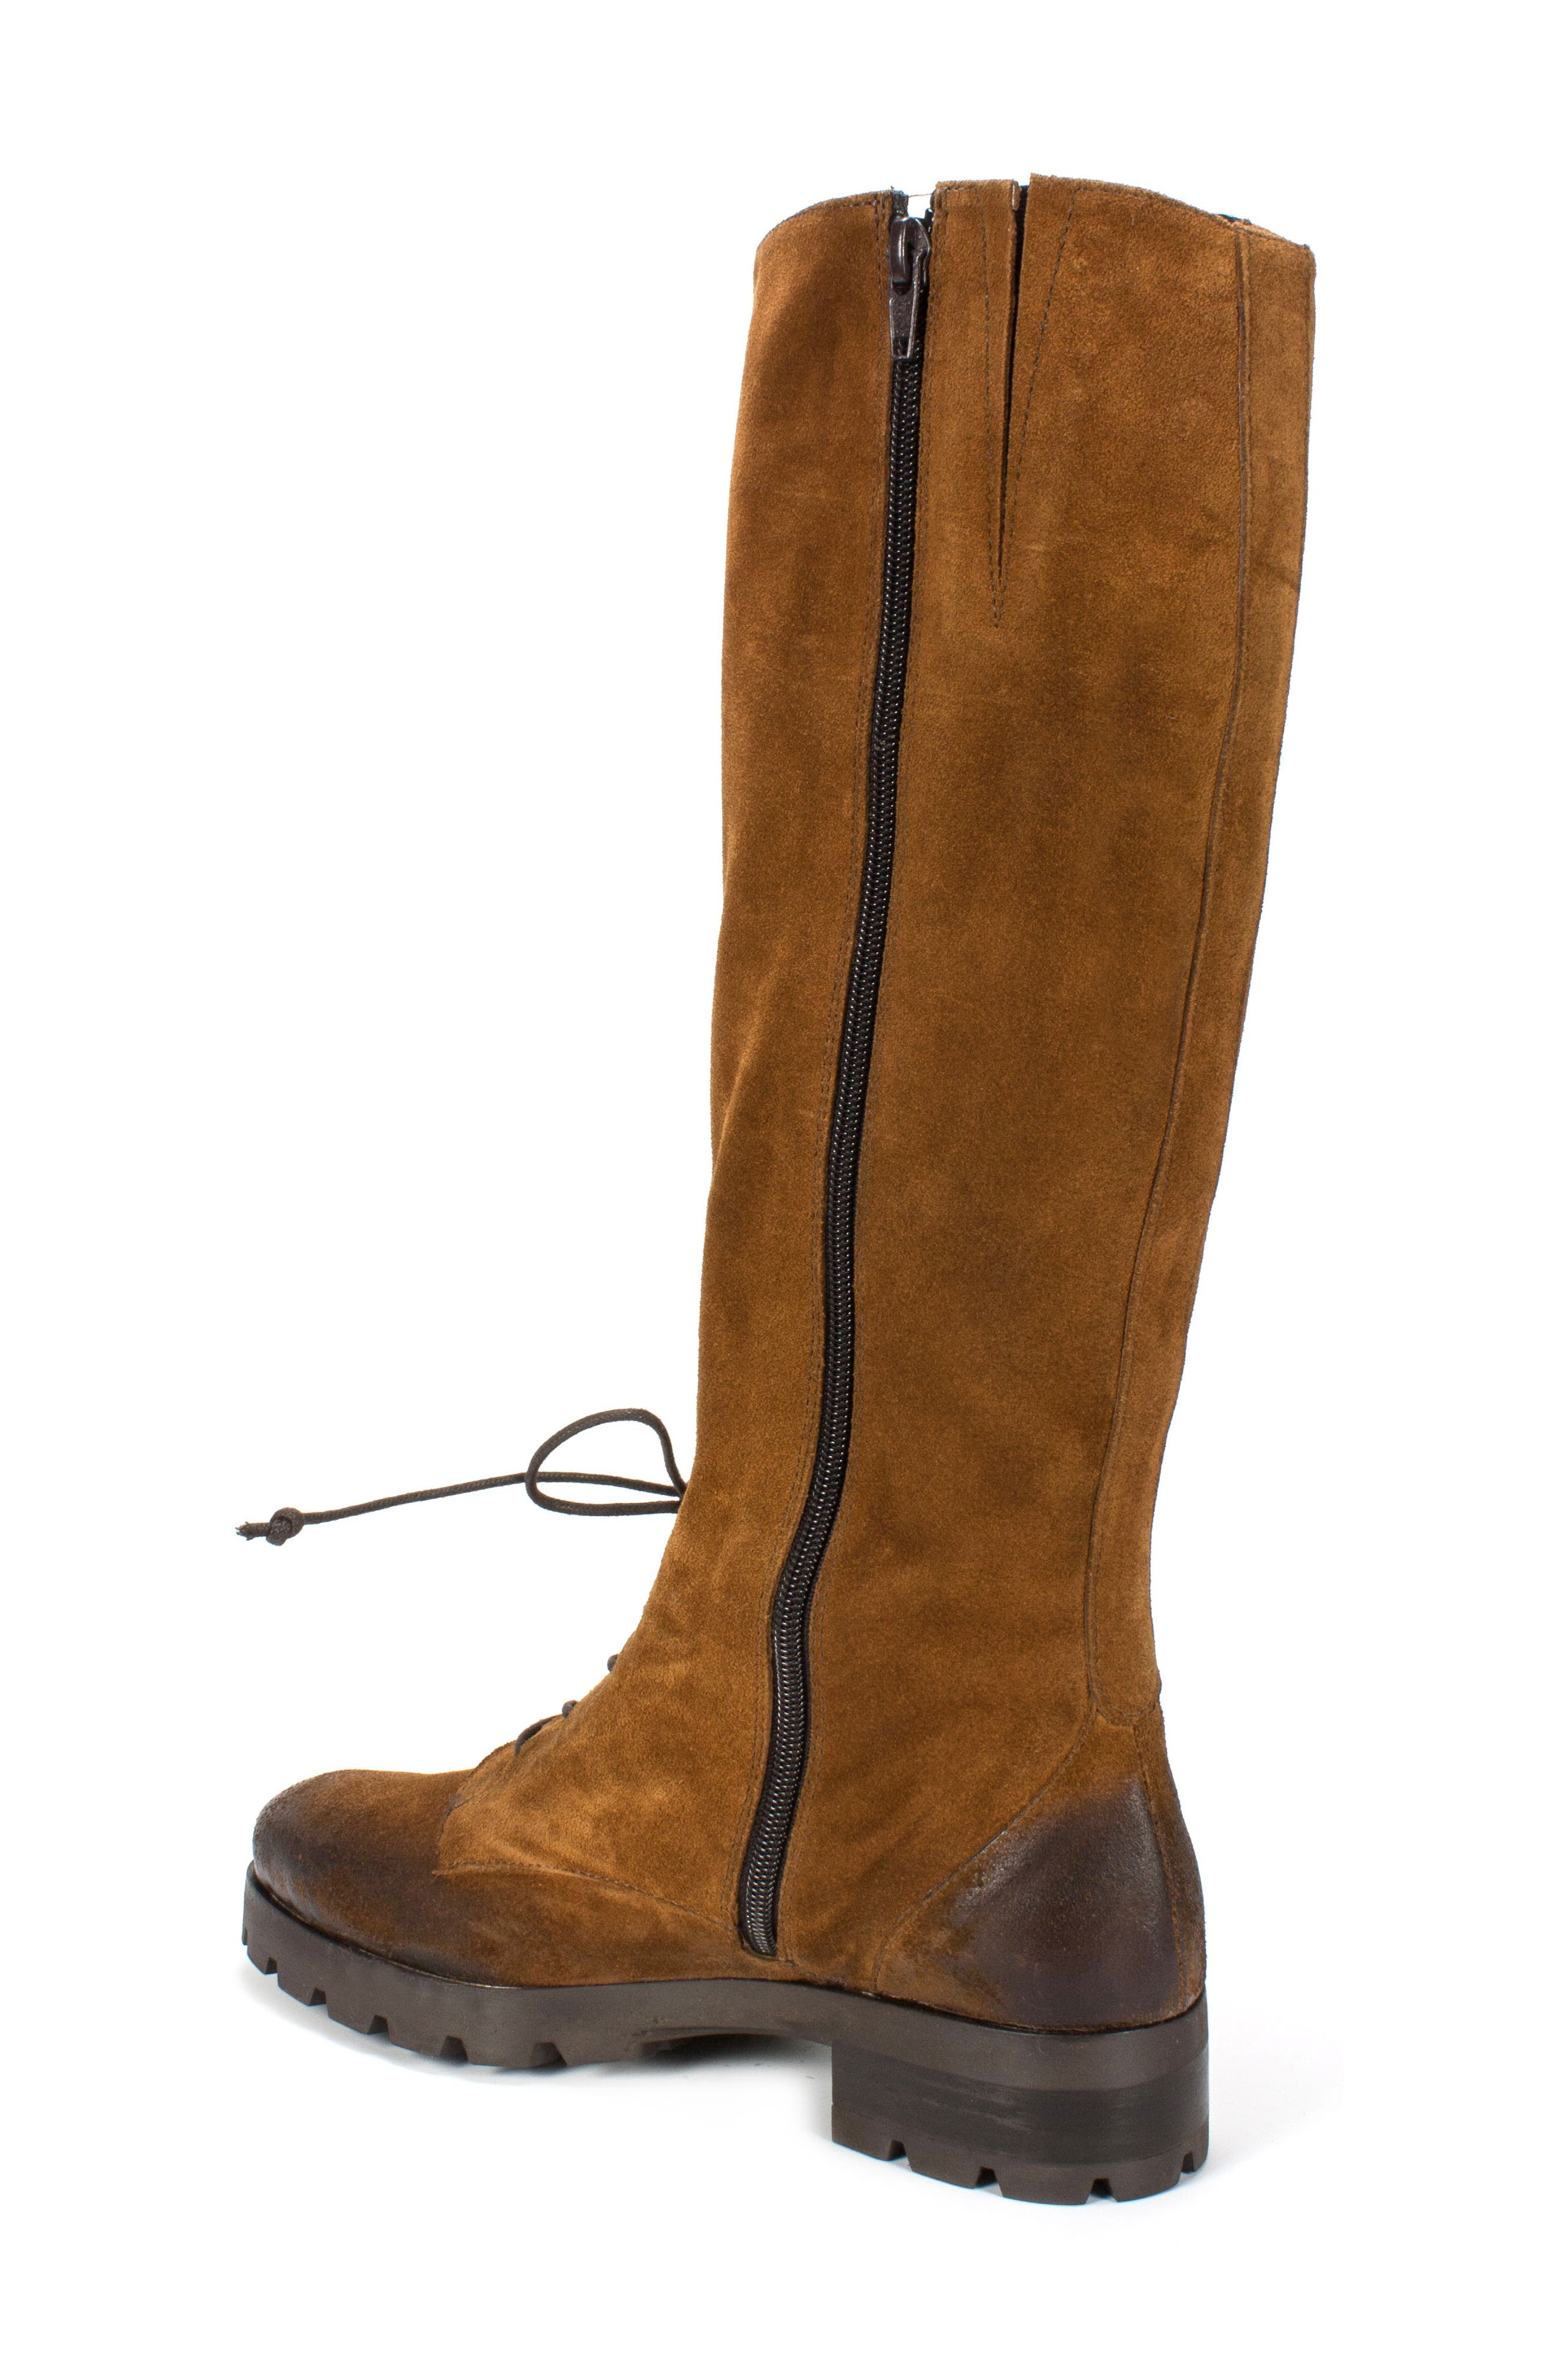 Dobbs Boot,                             Alternate thumbnail 2, color,                             Camel Suede